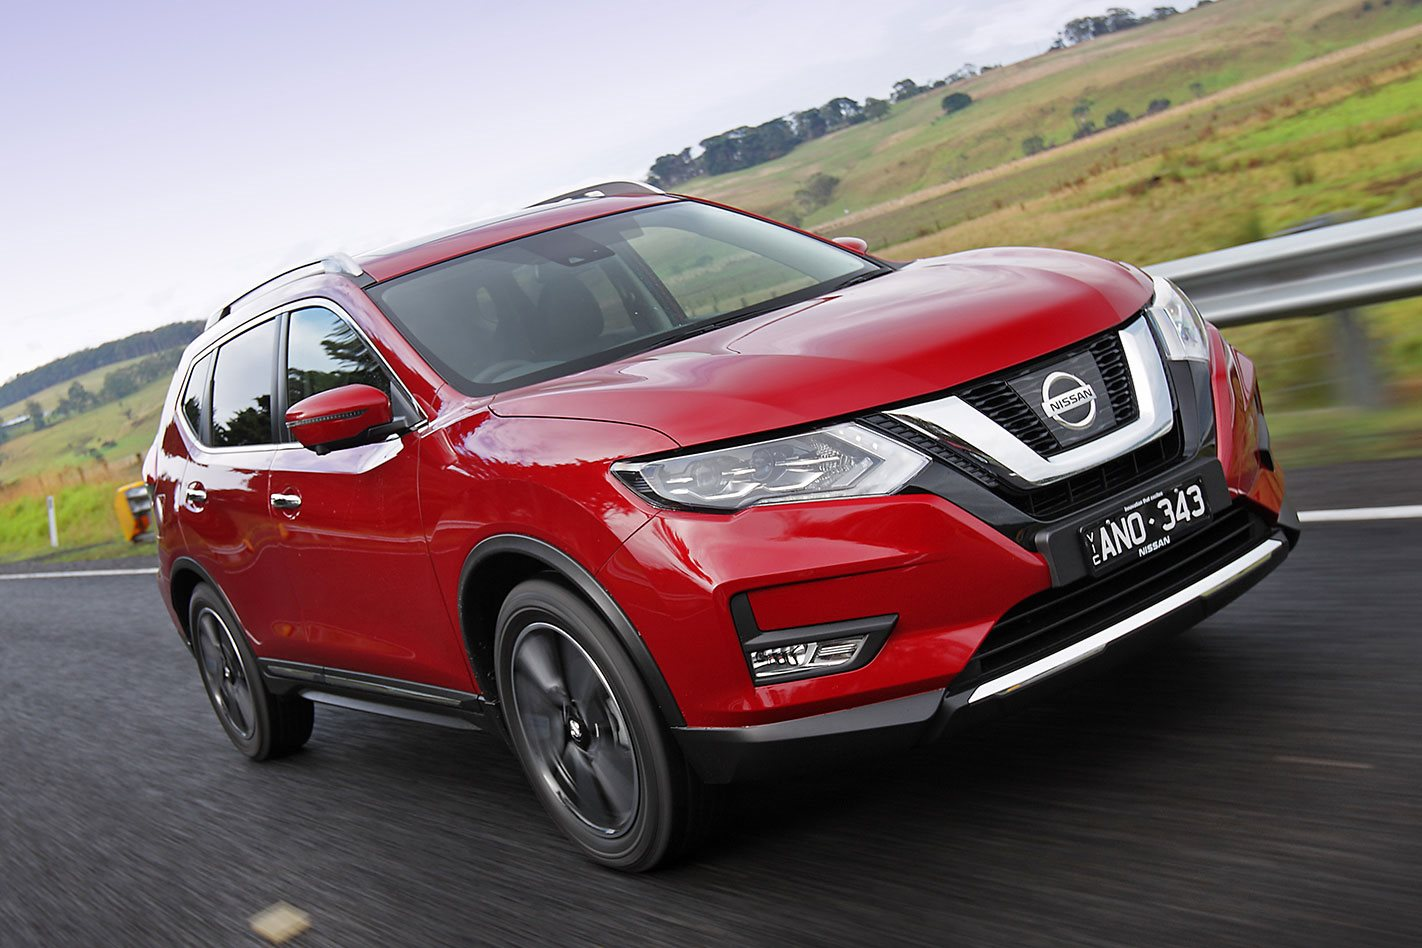 2017 nissan x trail review live prices and updates whichcar. Black Bedroom Furniture Sets. Home Design Ideas